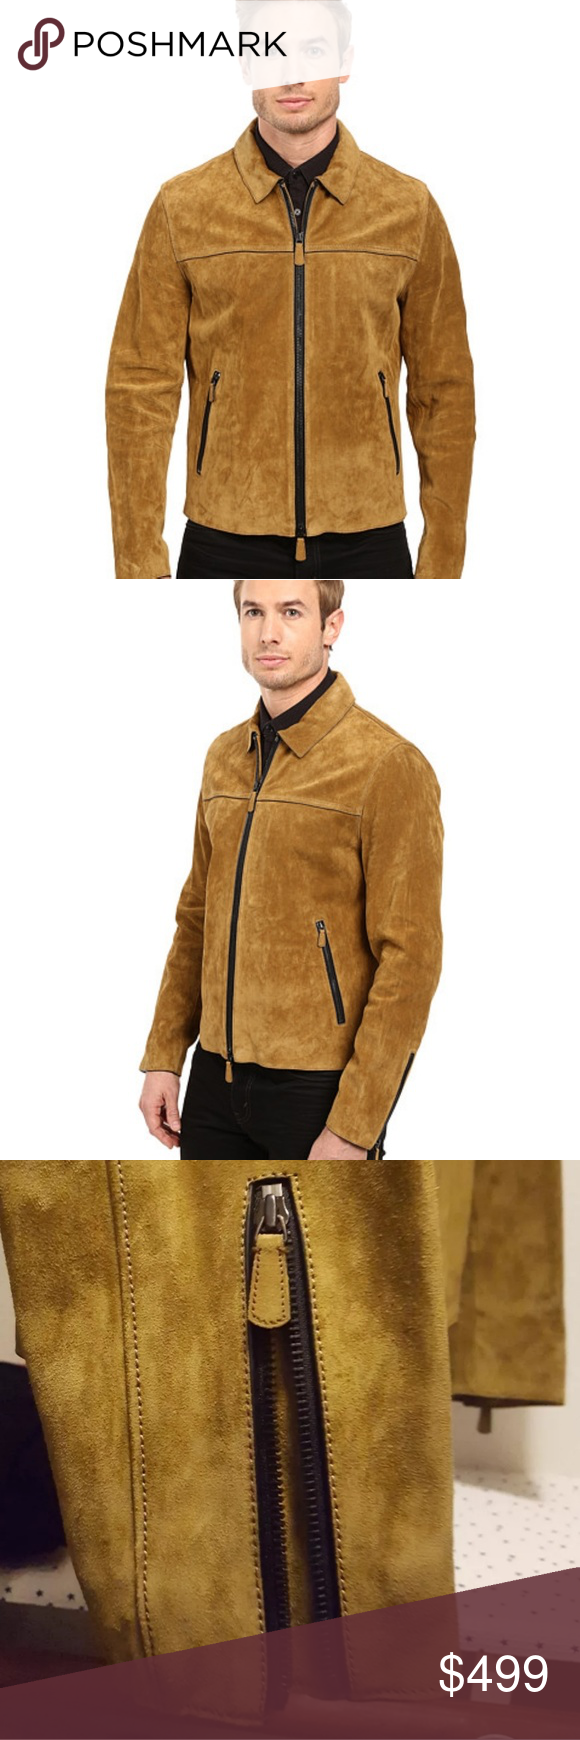 Brand New Coach York Suede Leather Jacket 100 leather